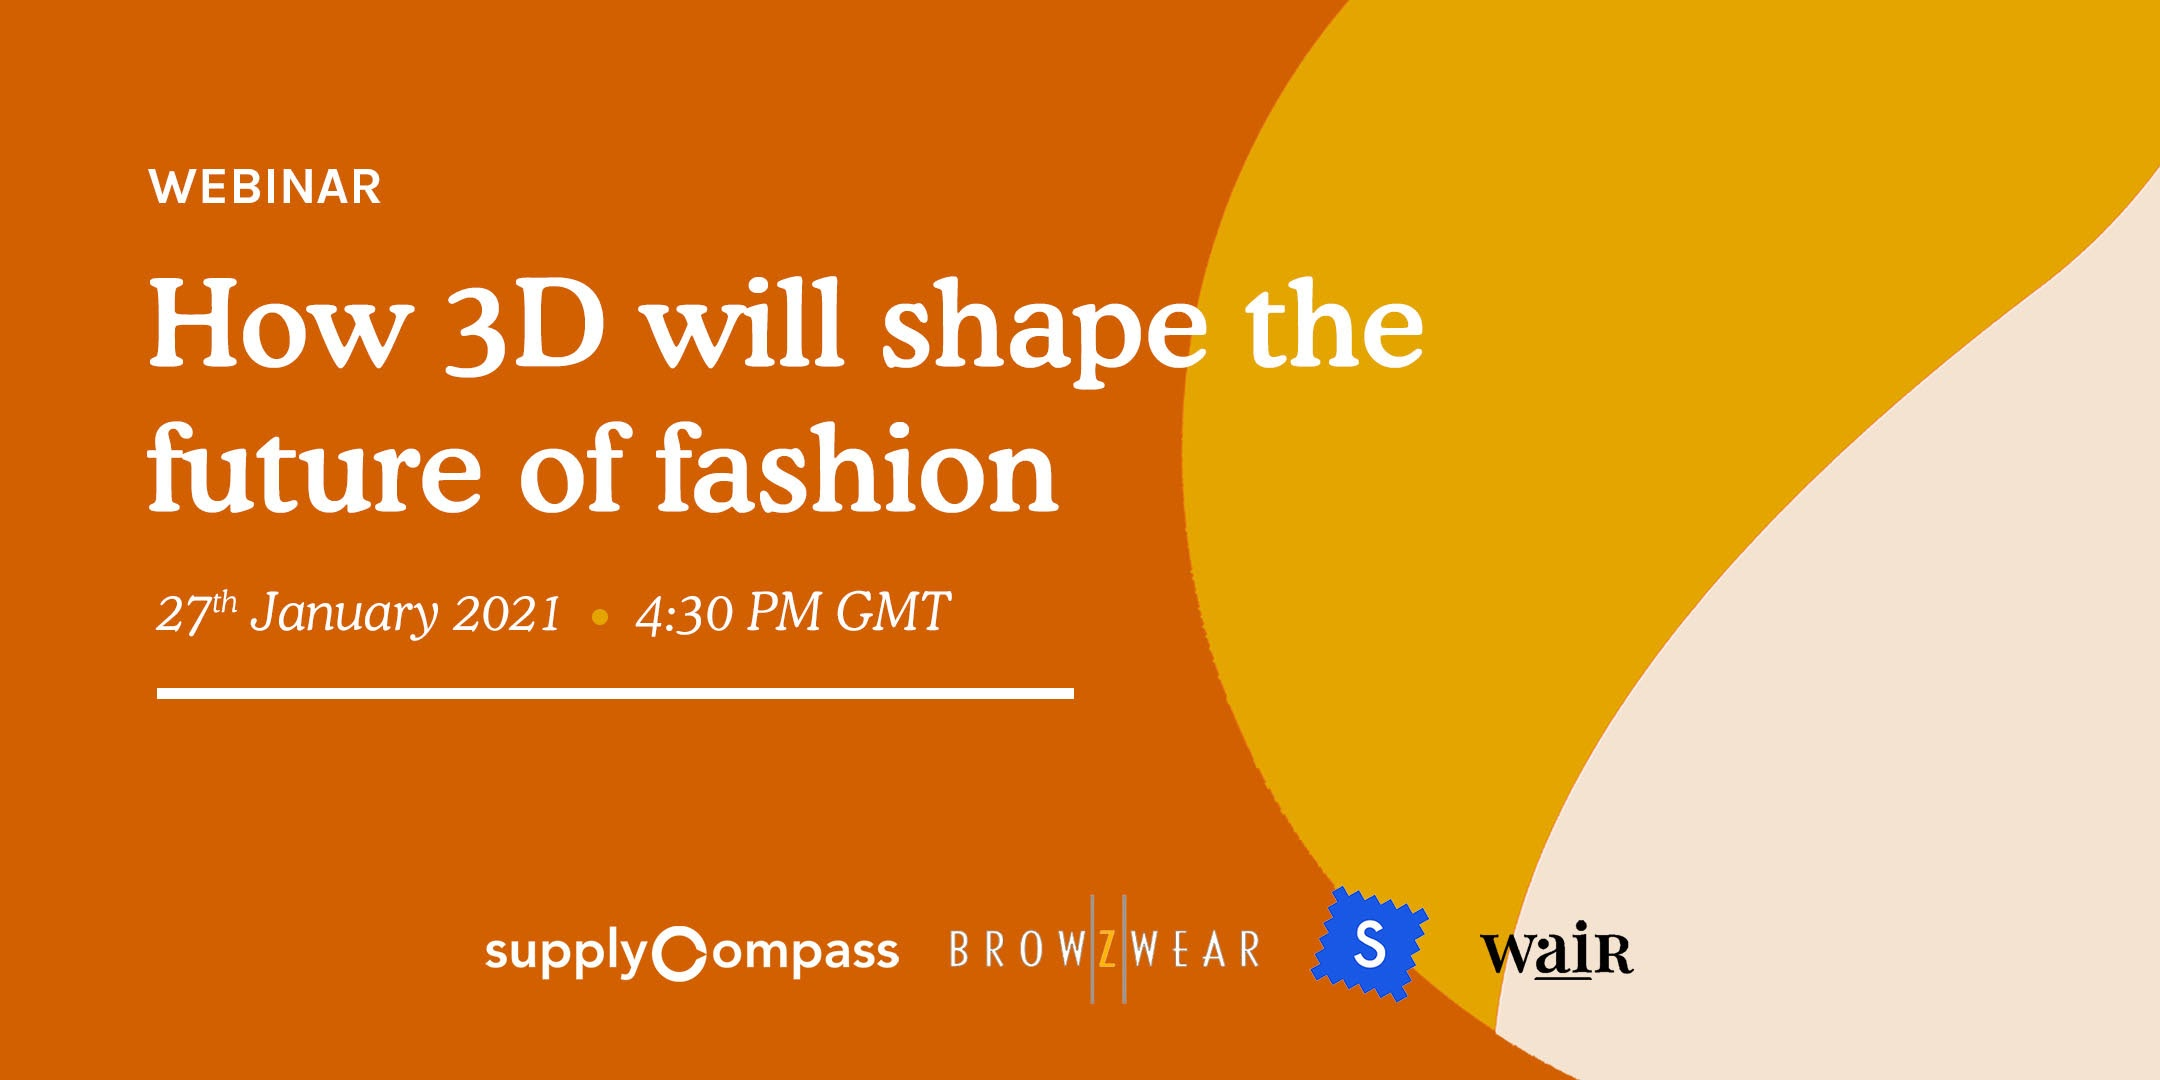 Supplycompass To Host First Webinar Of Its Kind Exploring How 3D Technology Will Shape The Future Of Fashion